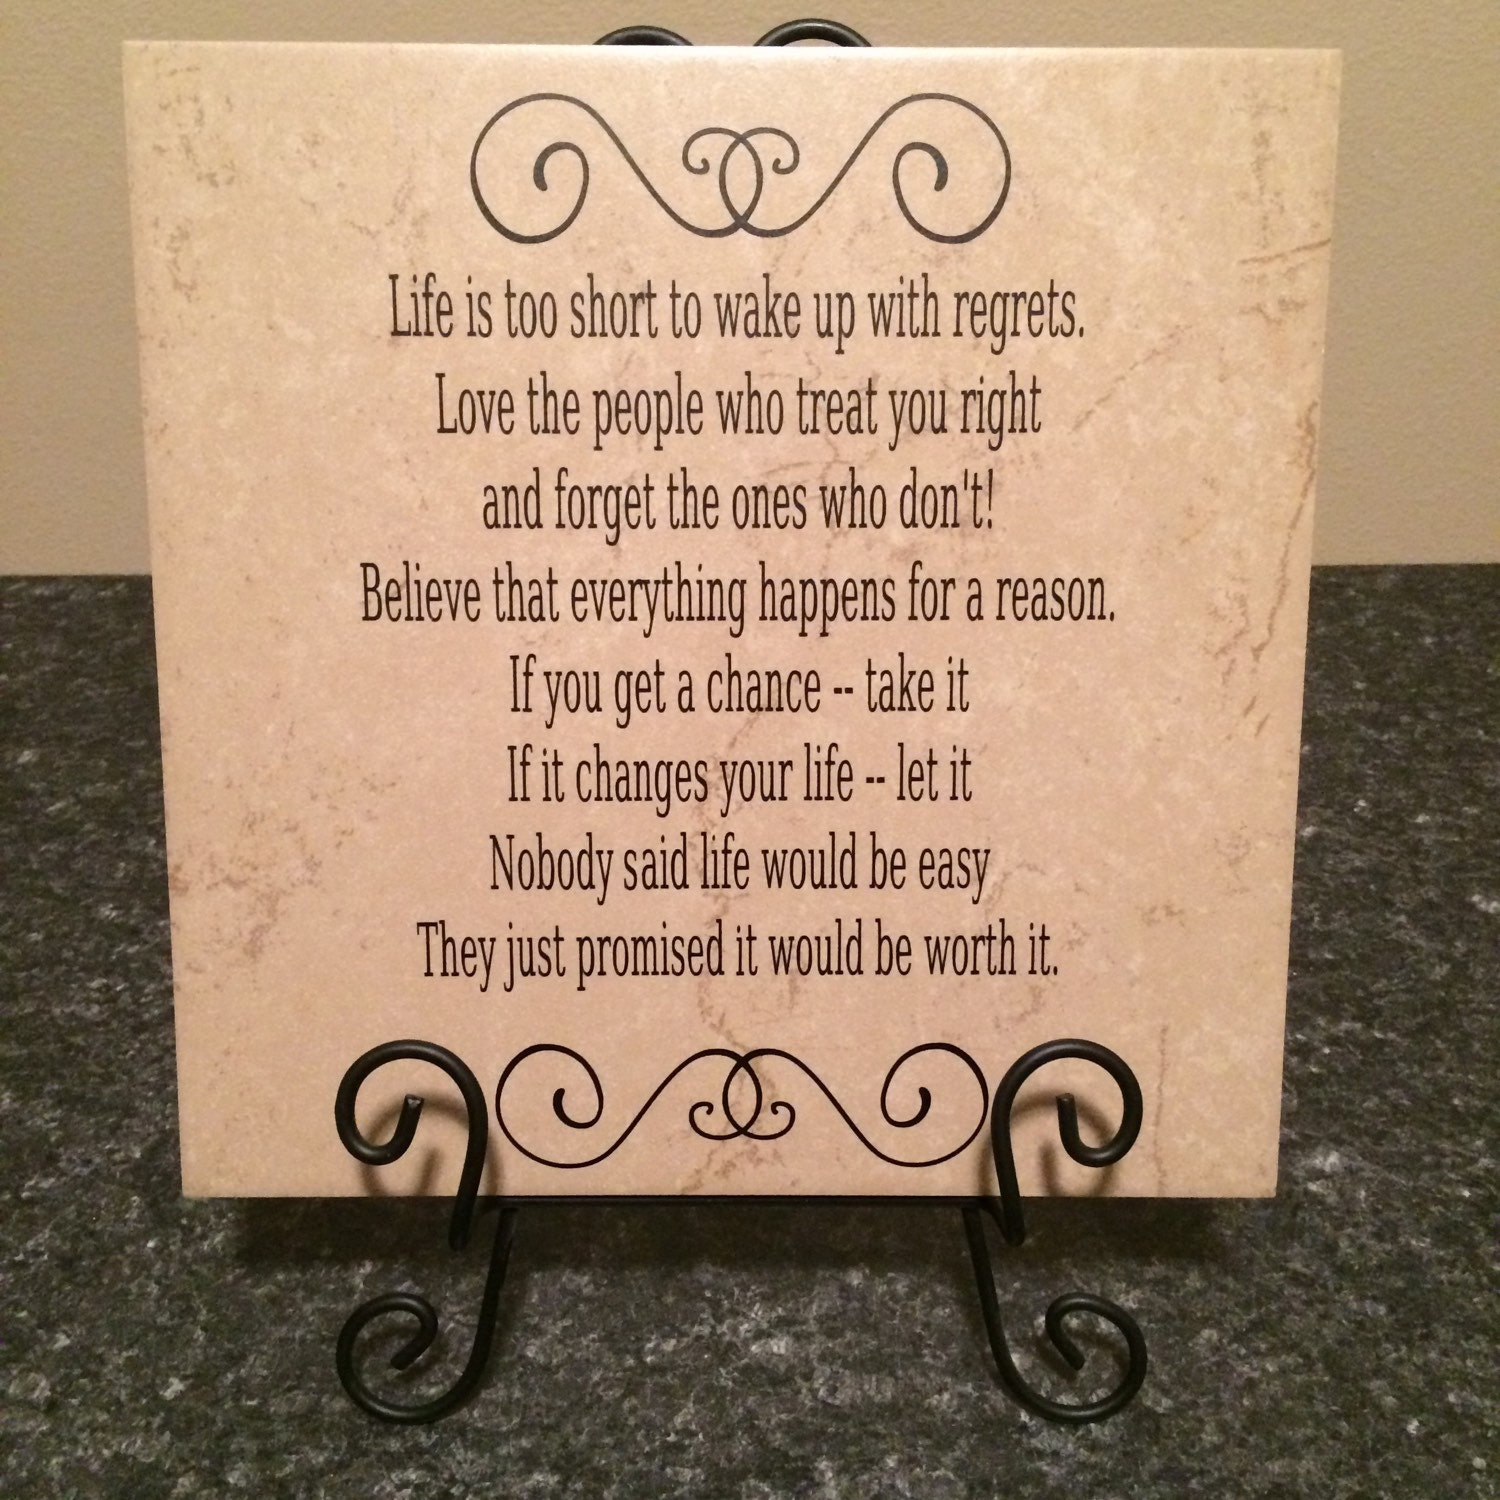 Ceramic Tiles With Sayings : Ceramic tile sayings quotes life is too short